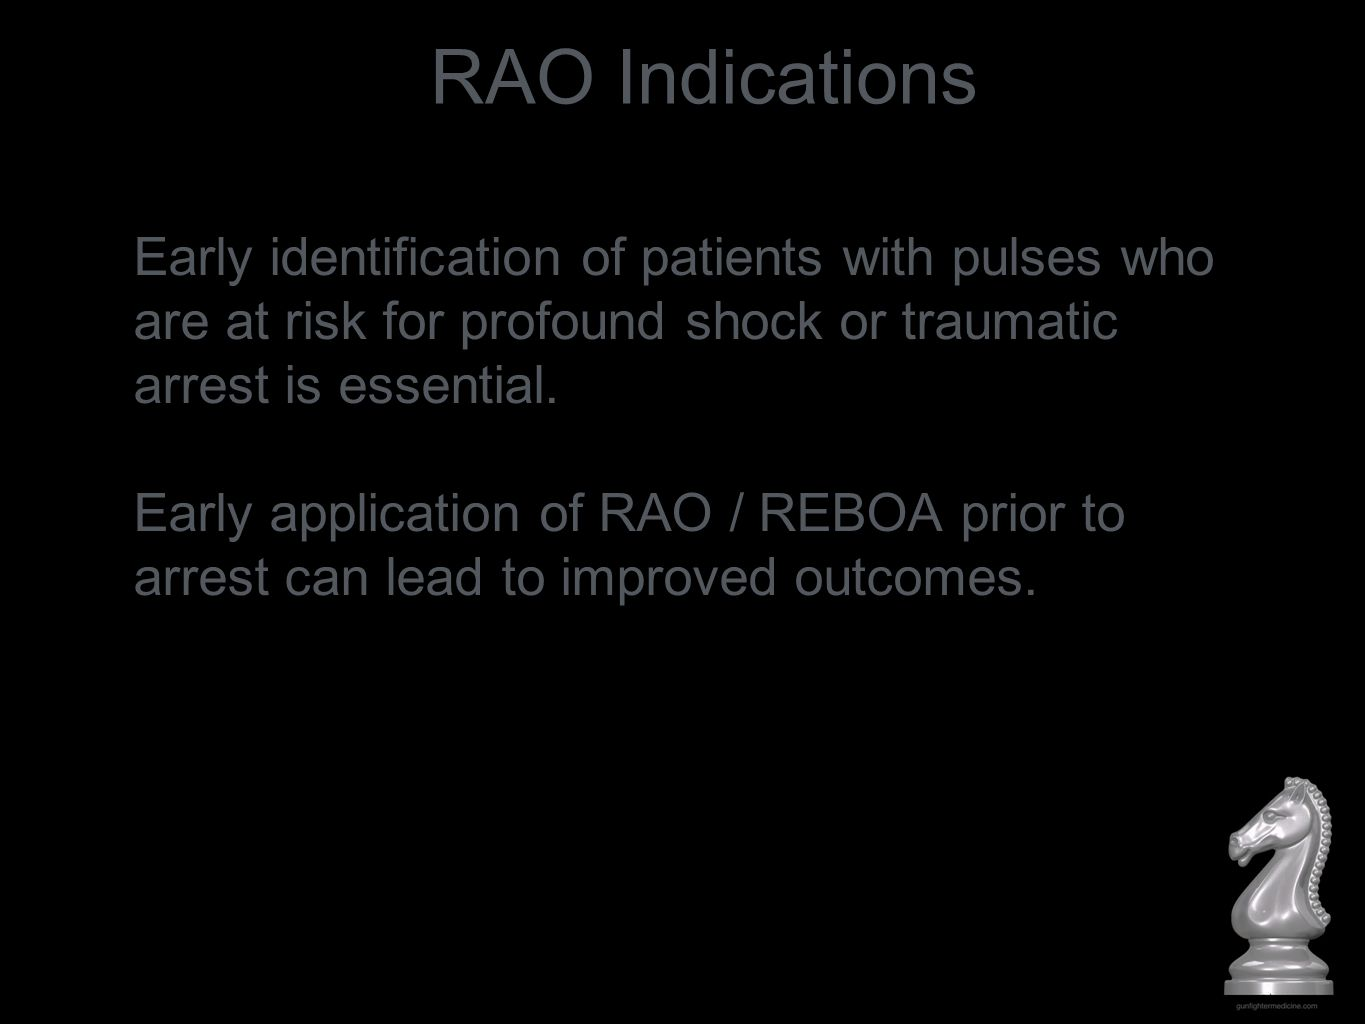 Early identification of patients with pulses who are at risk for profound shock or traumatic arrest is essential. Early application of RAO / REBOA pri